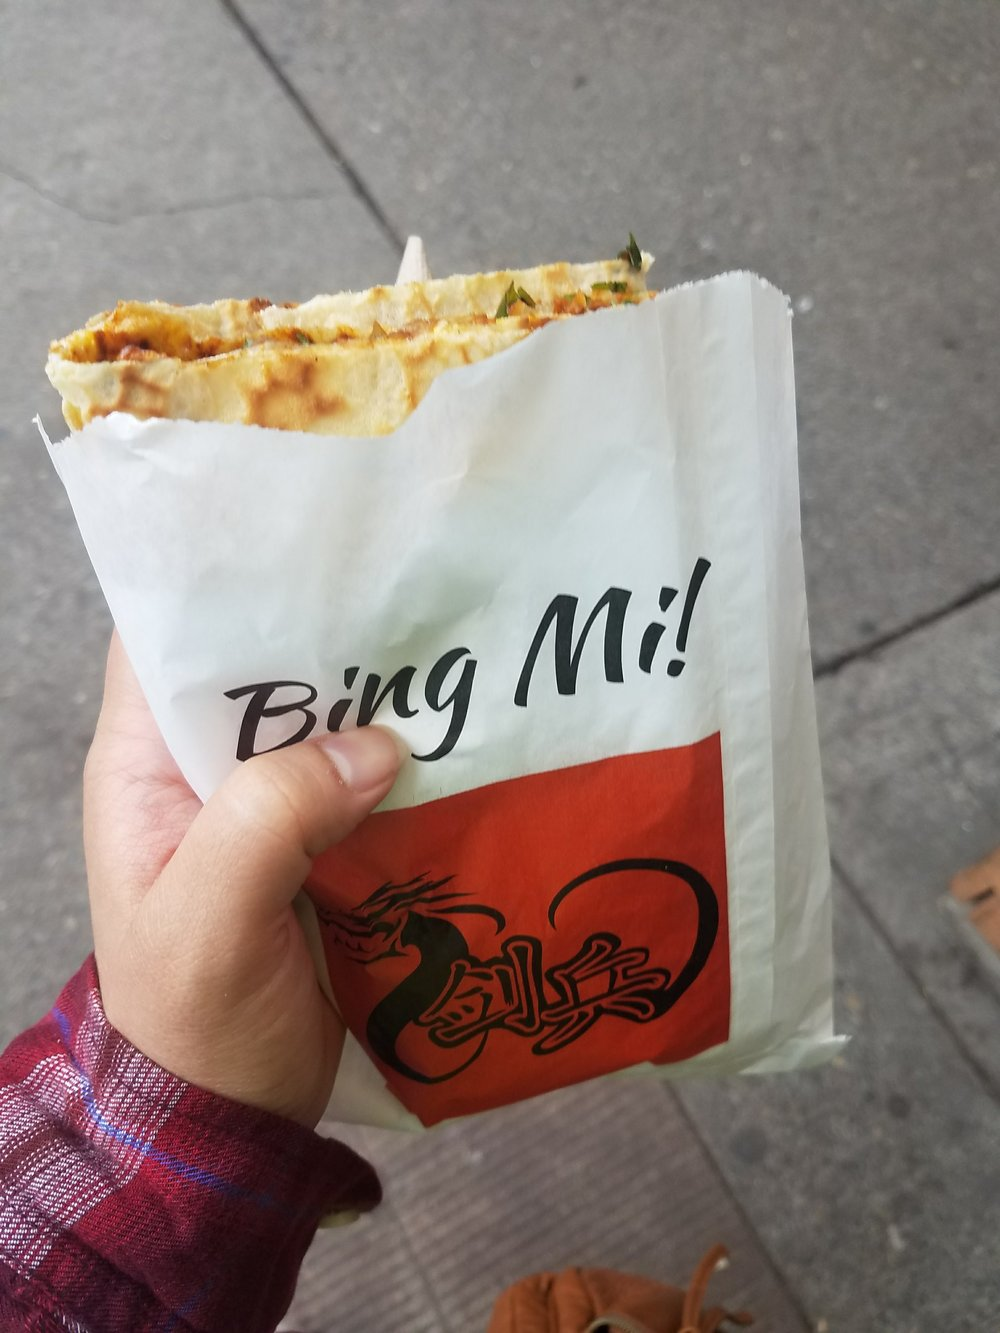 This is a Chinese crepe or Jian bing. OMG so fire.